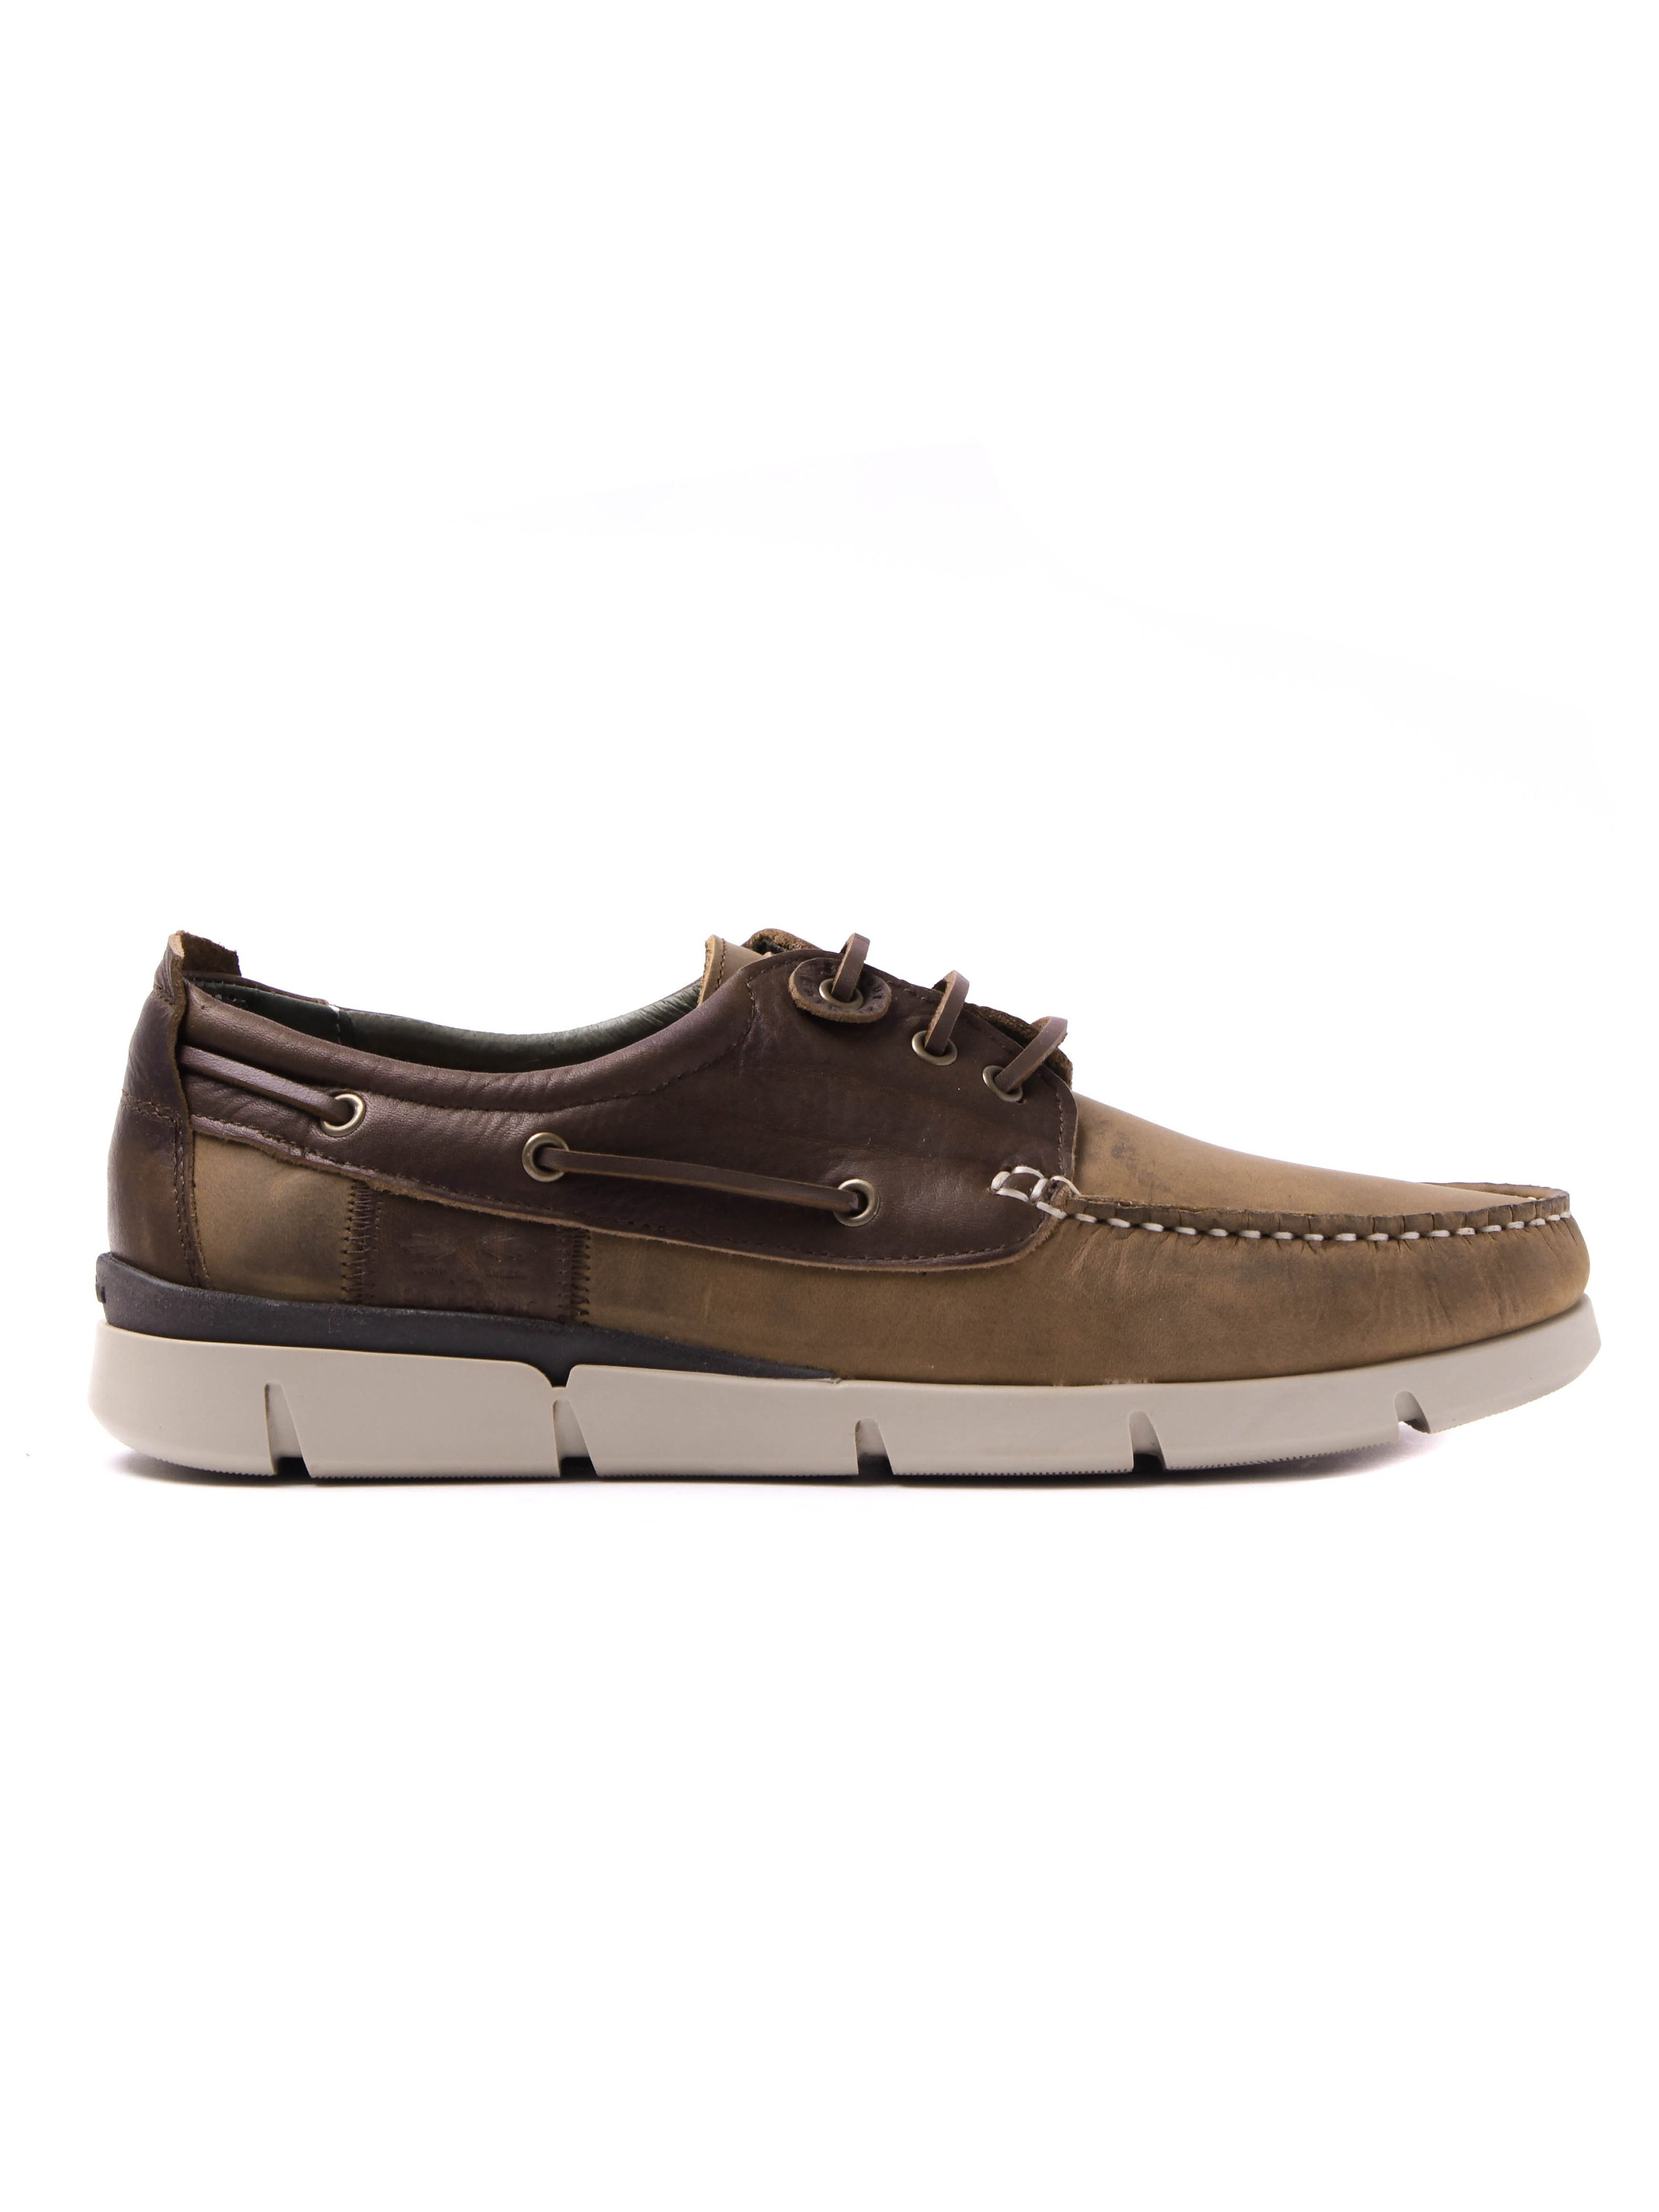 Barbour Men's George Aged Leather Boat Shoes - Beige & Brown